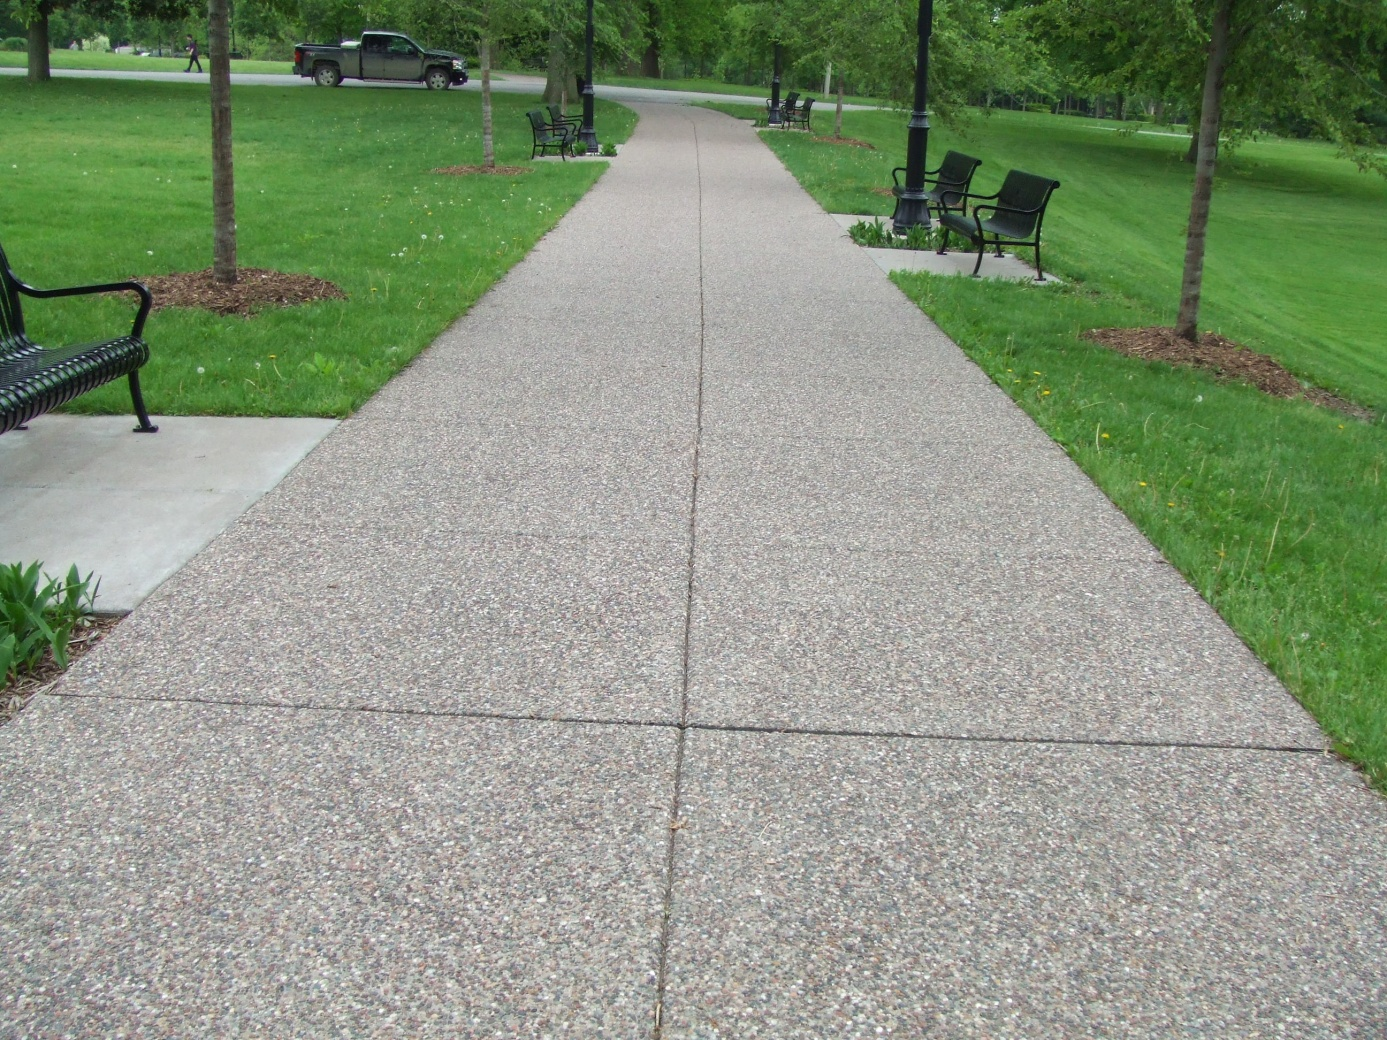 Exposed aggregate concrete walkway in Davenport park.